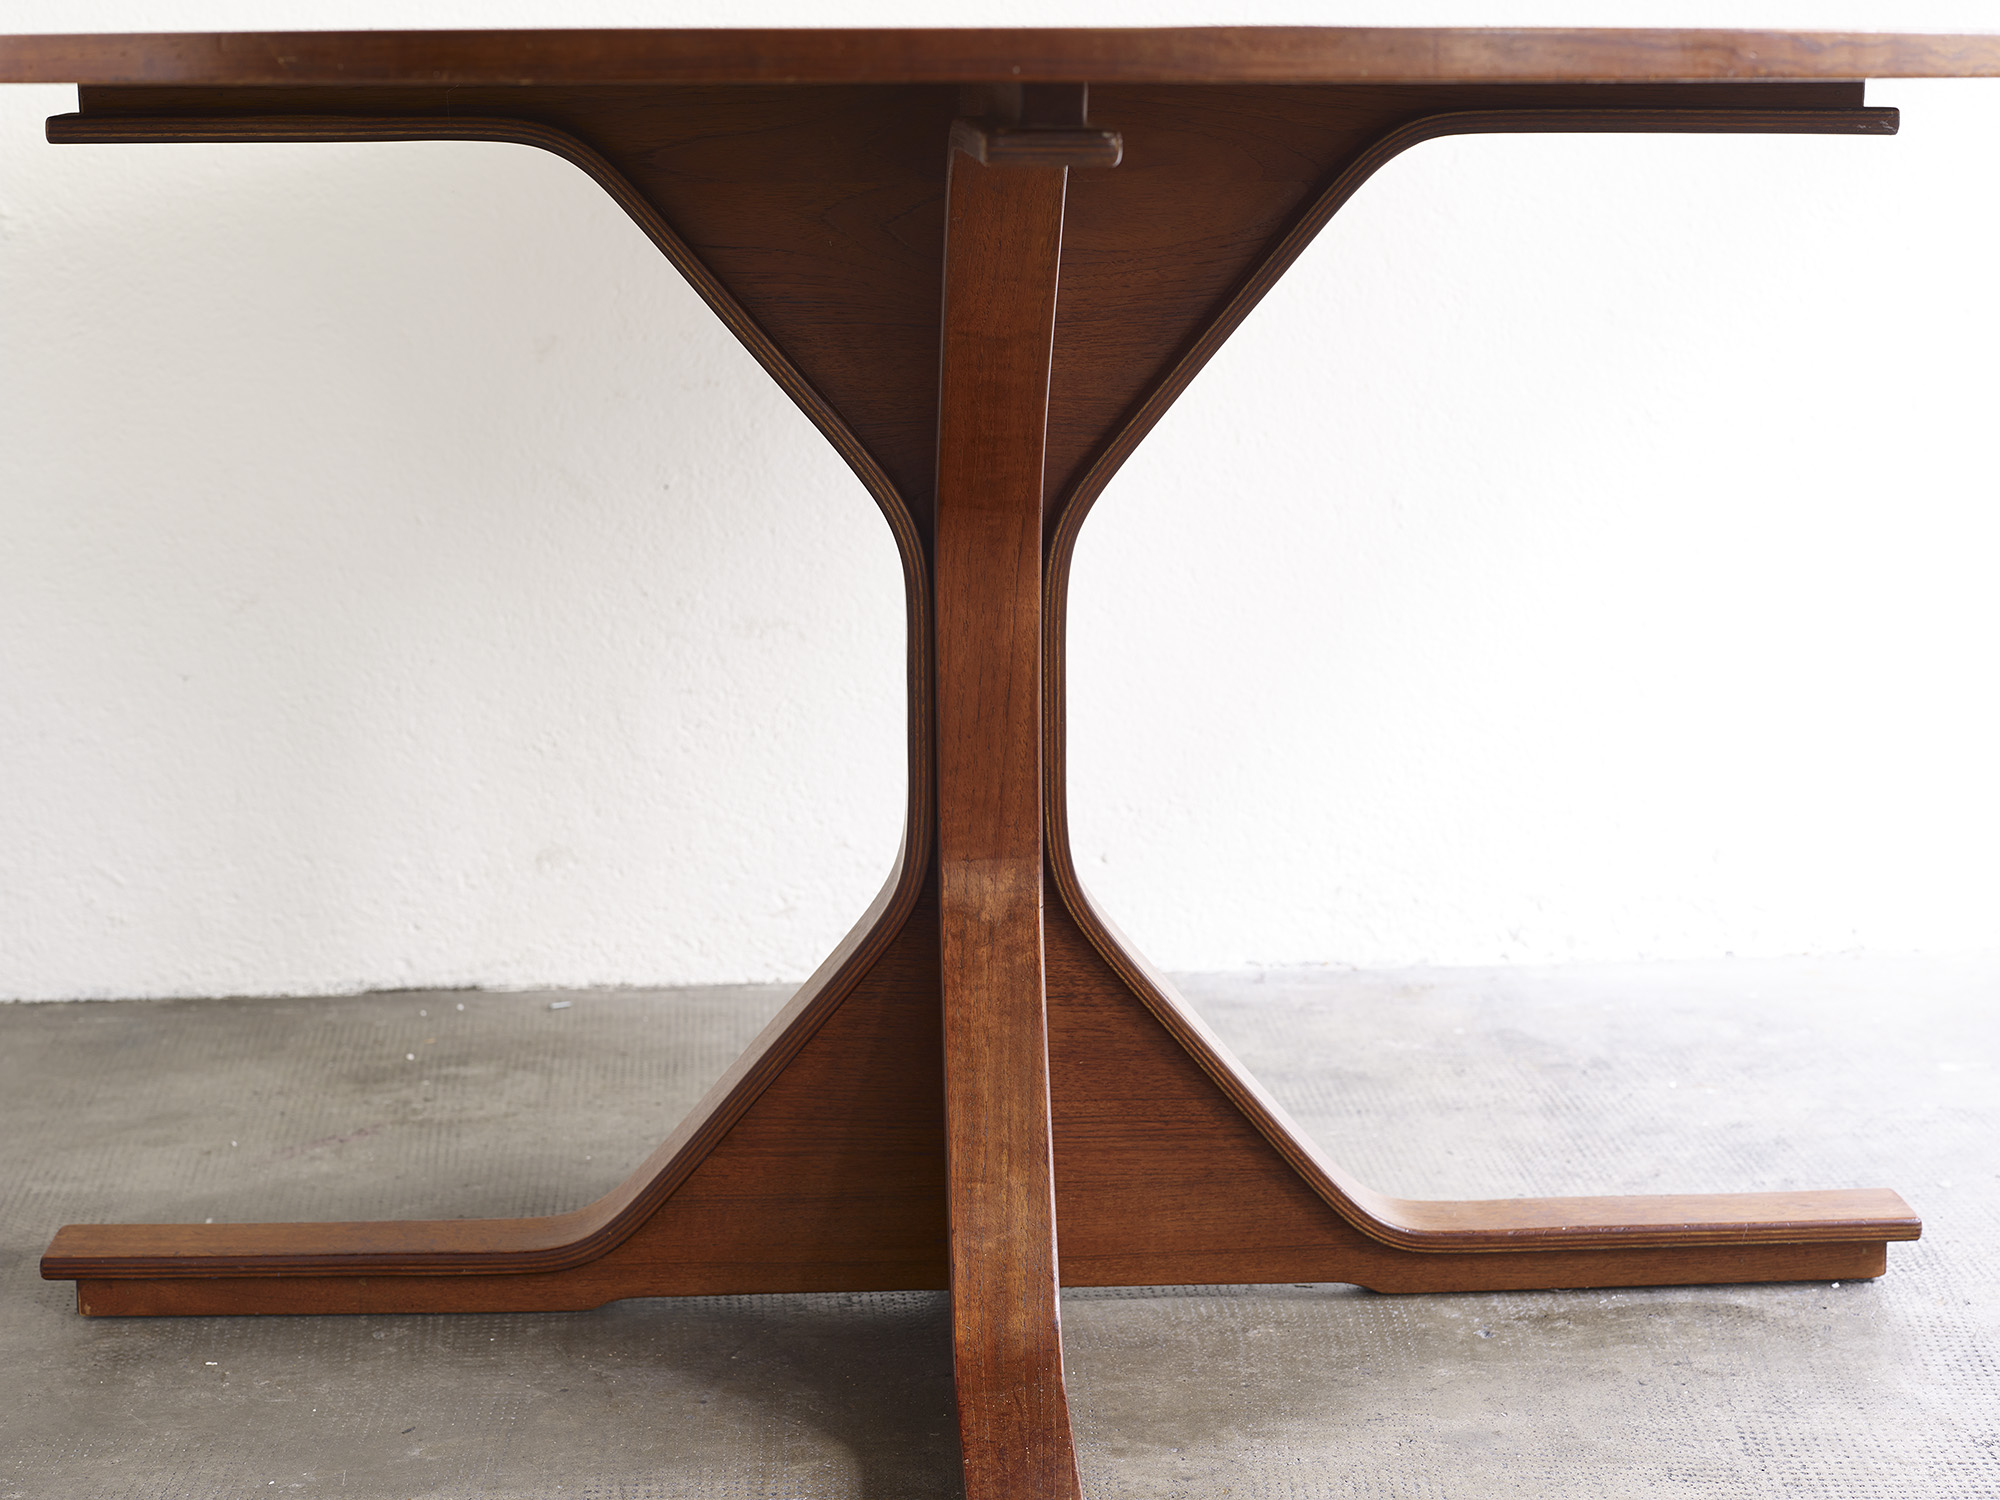 teak-dining-table-model-522-by-gianfranco-frattini-image-02